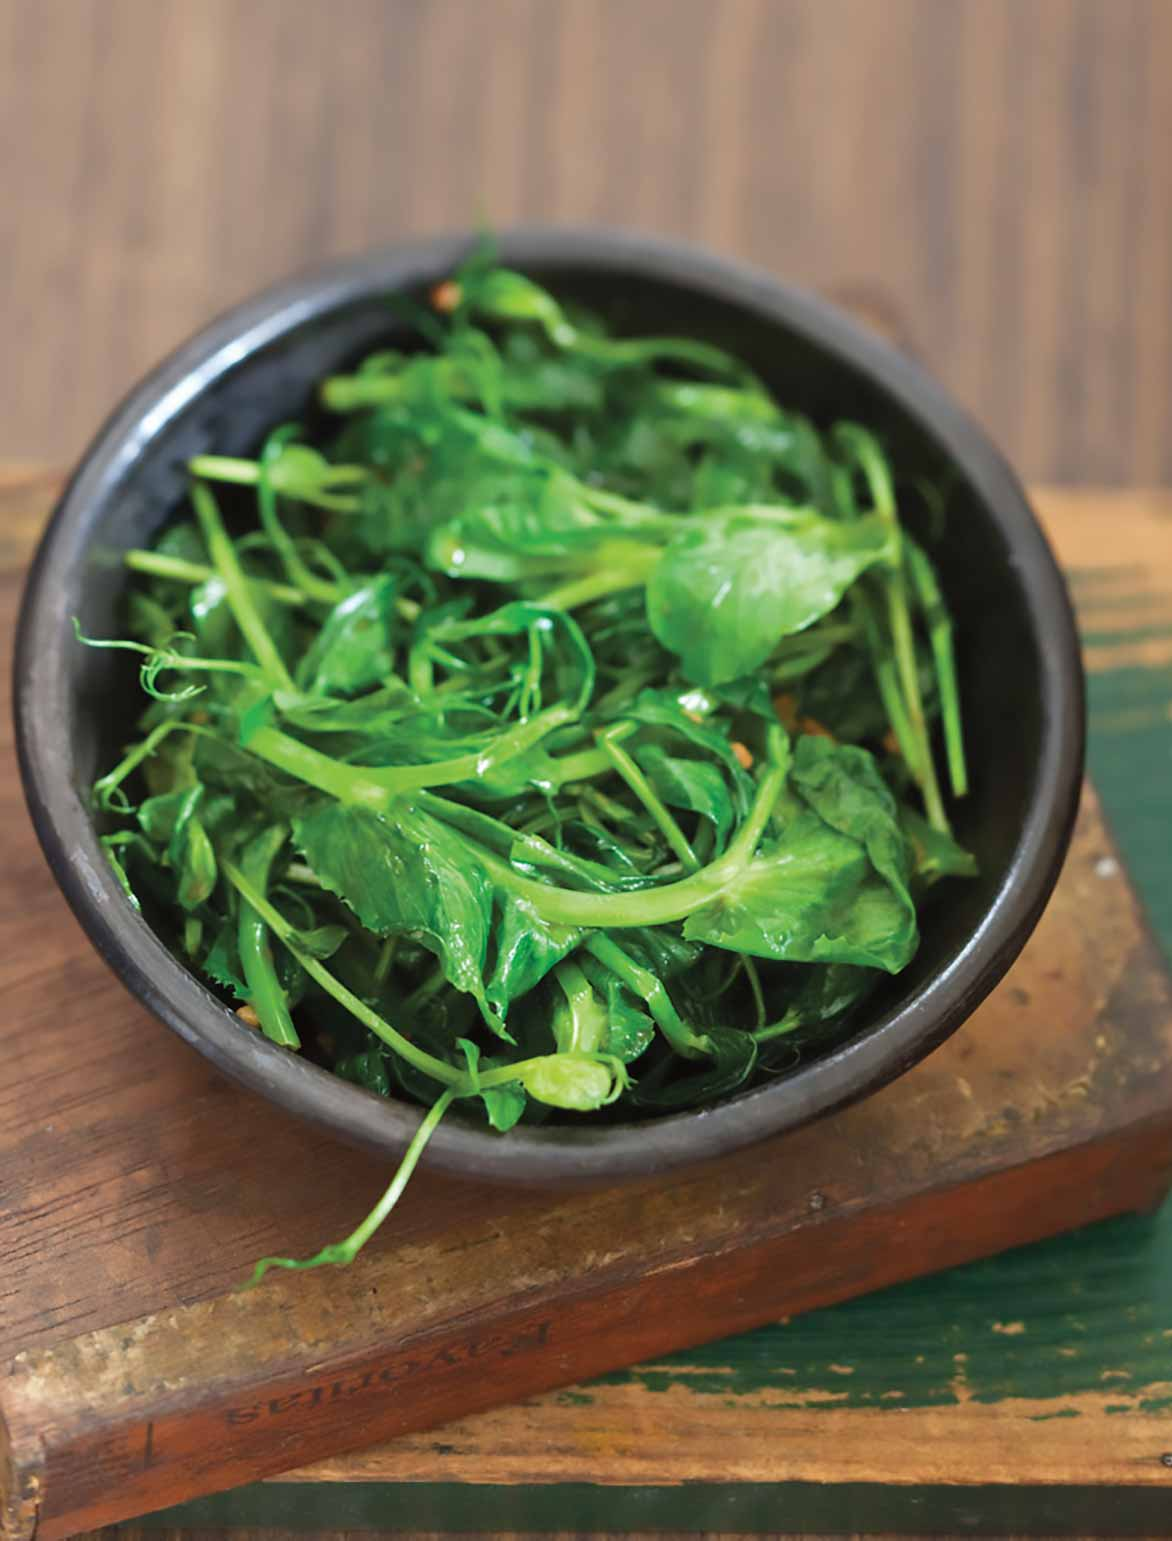 A brown bowl filled with stir-fried pea shoots